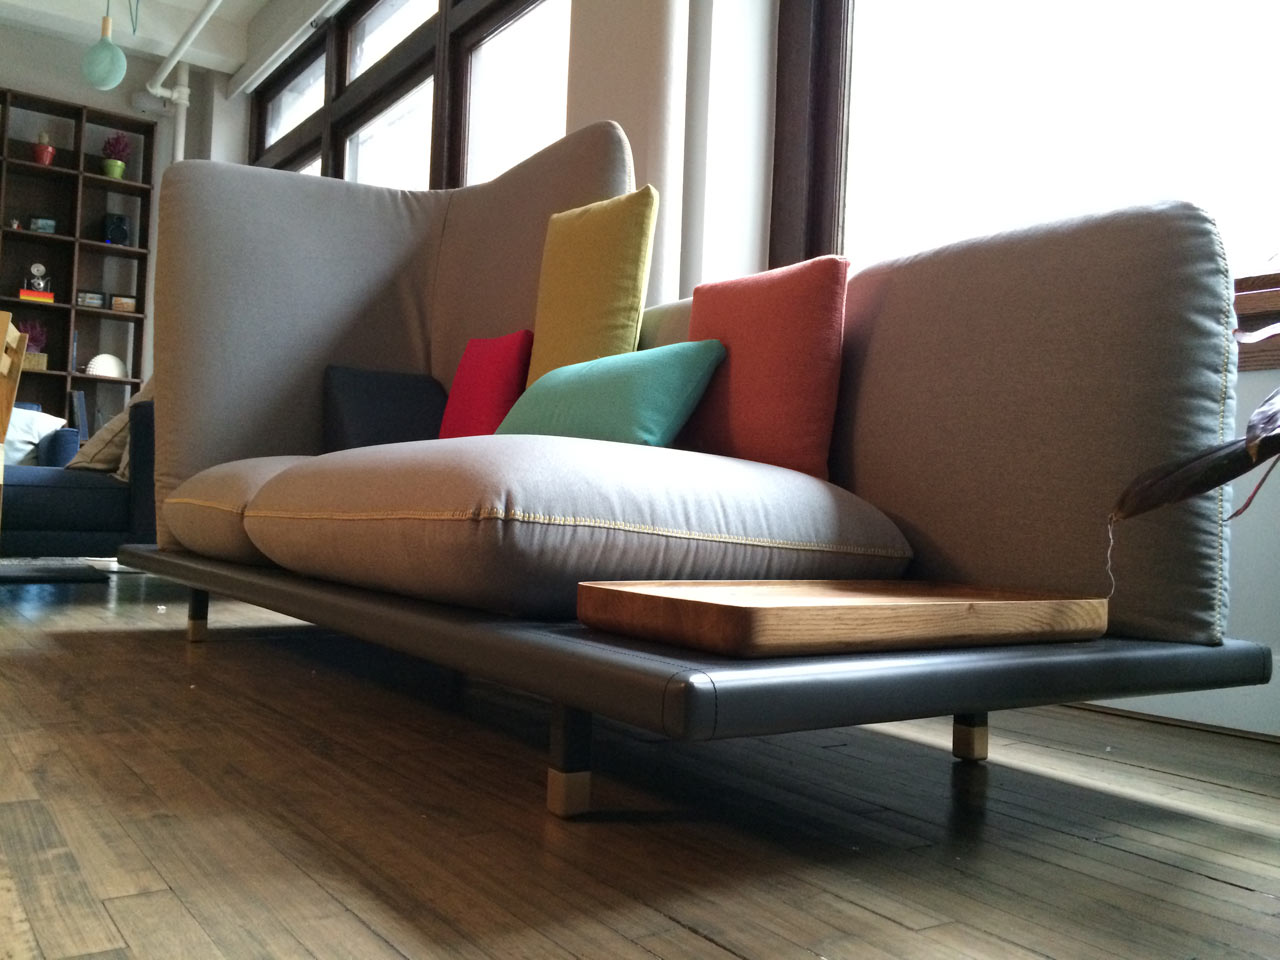 Filippo-Berto-Design-Apart-#Sofa4Manhattan-3